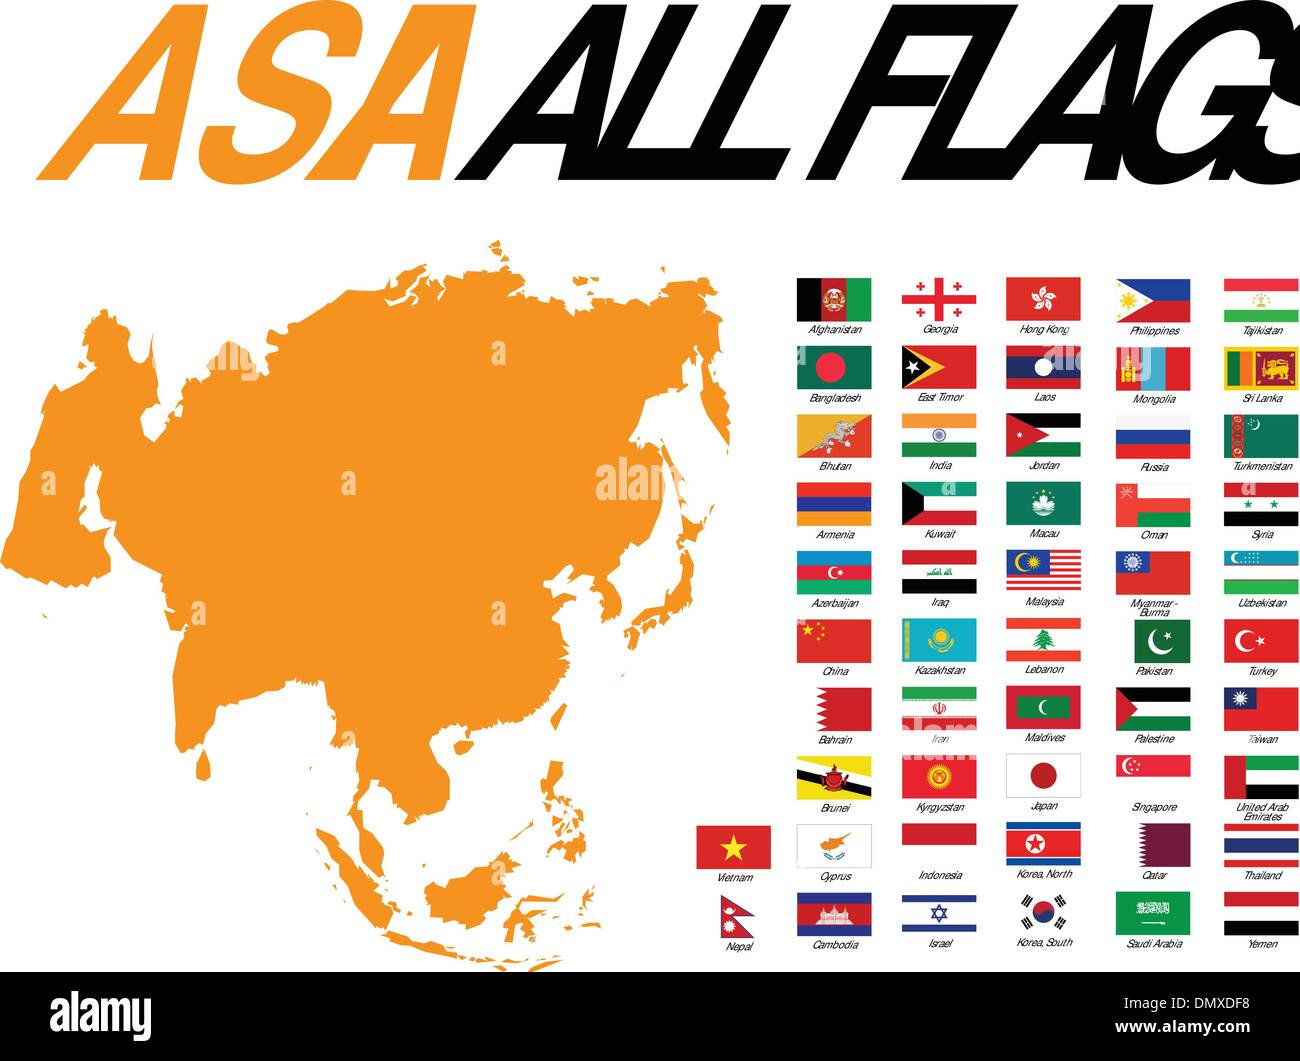 Asia All Flags - Stock Vector